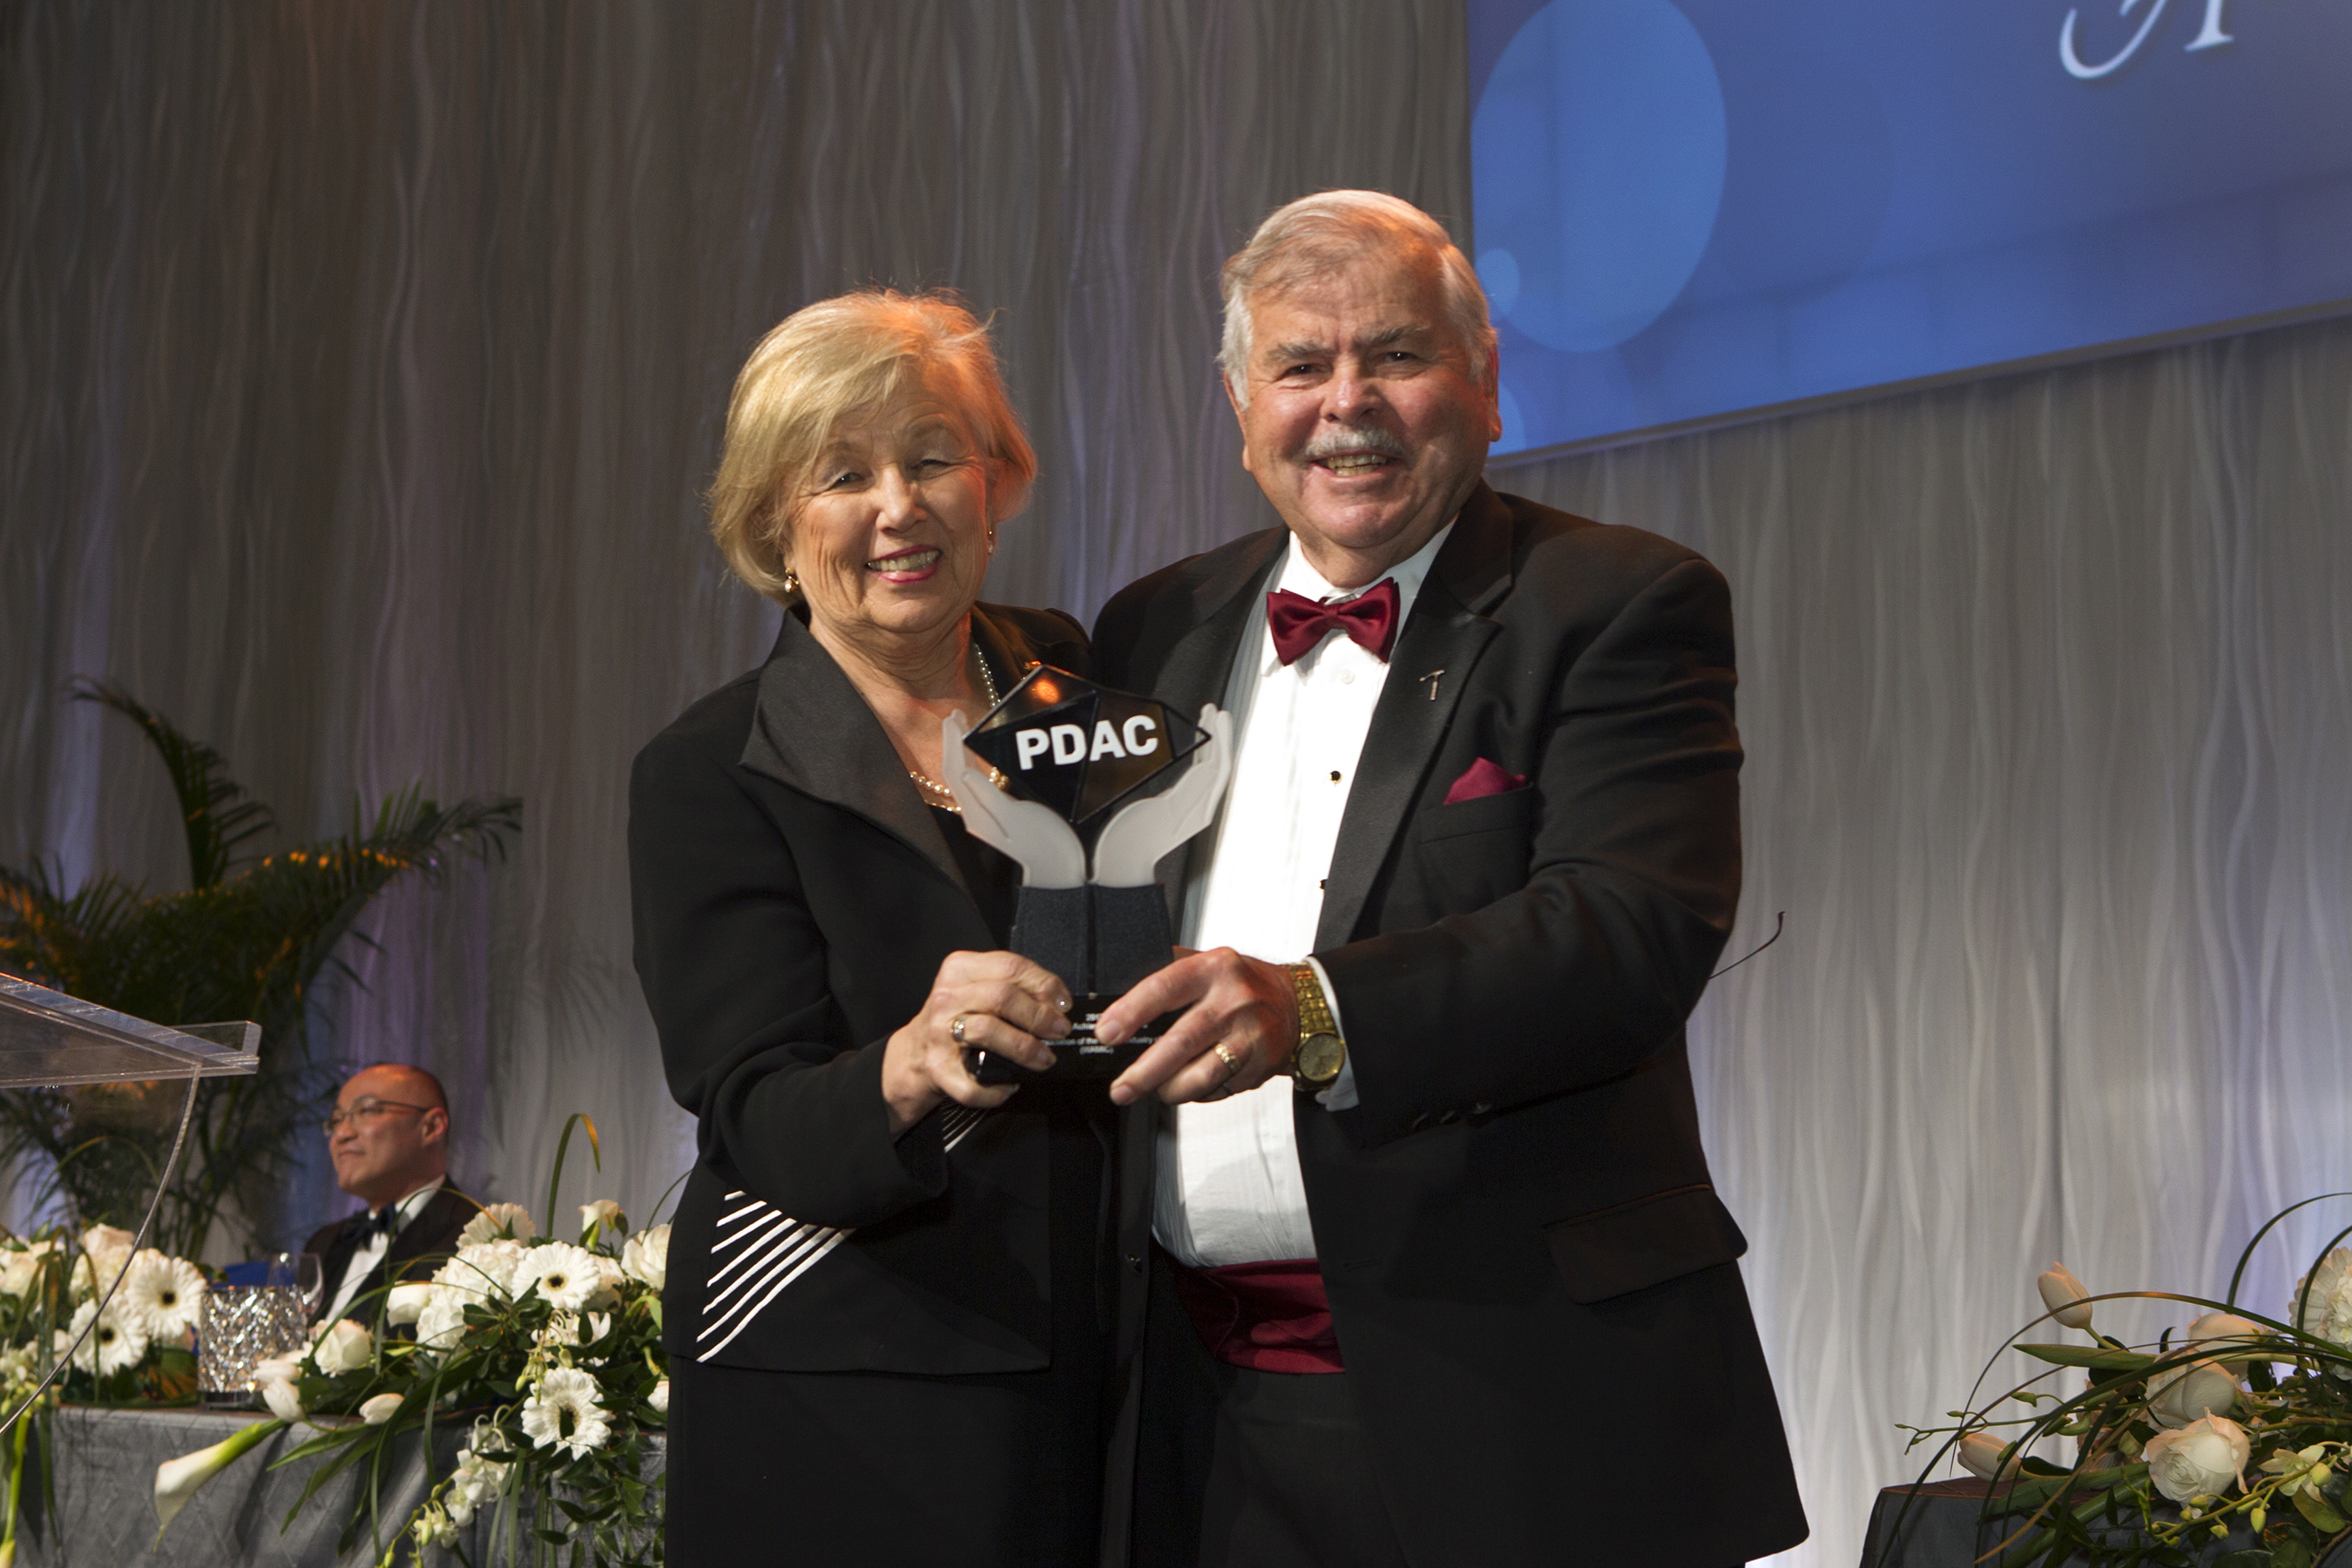 Special Achievement Award recipients, Women's Association of the Mining Industry of Canada (WAMIC) & Ed Thompson, PDAC, Past President